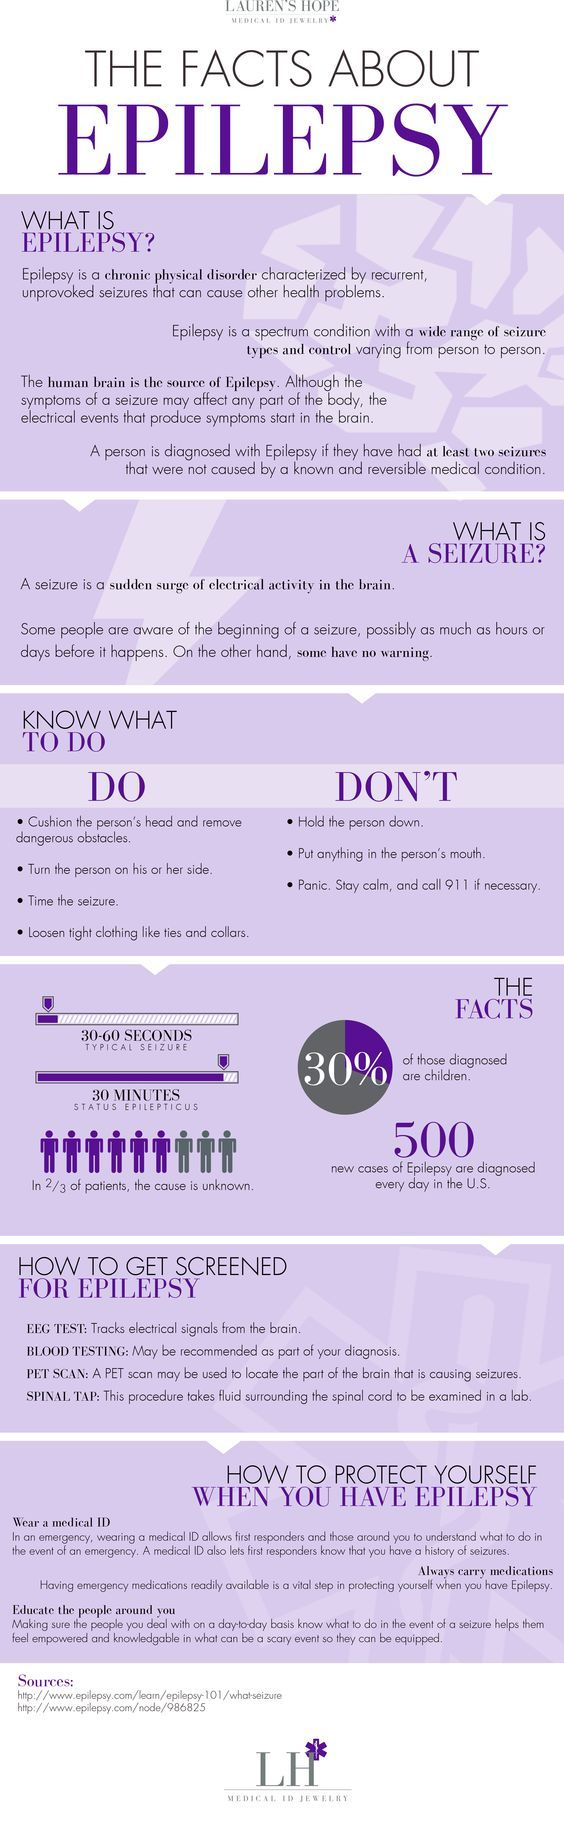 The Facts About Epilepsy. This chart shows you the facts about epilepsy and also teaches you how to get screened for it and how to protect yourself when you have epilepsy.